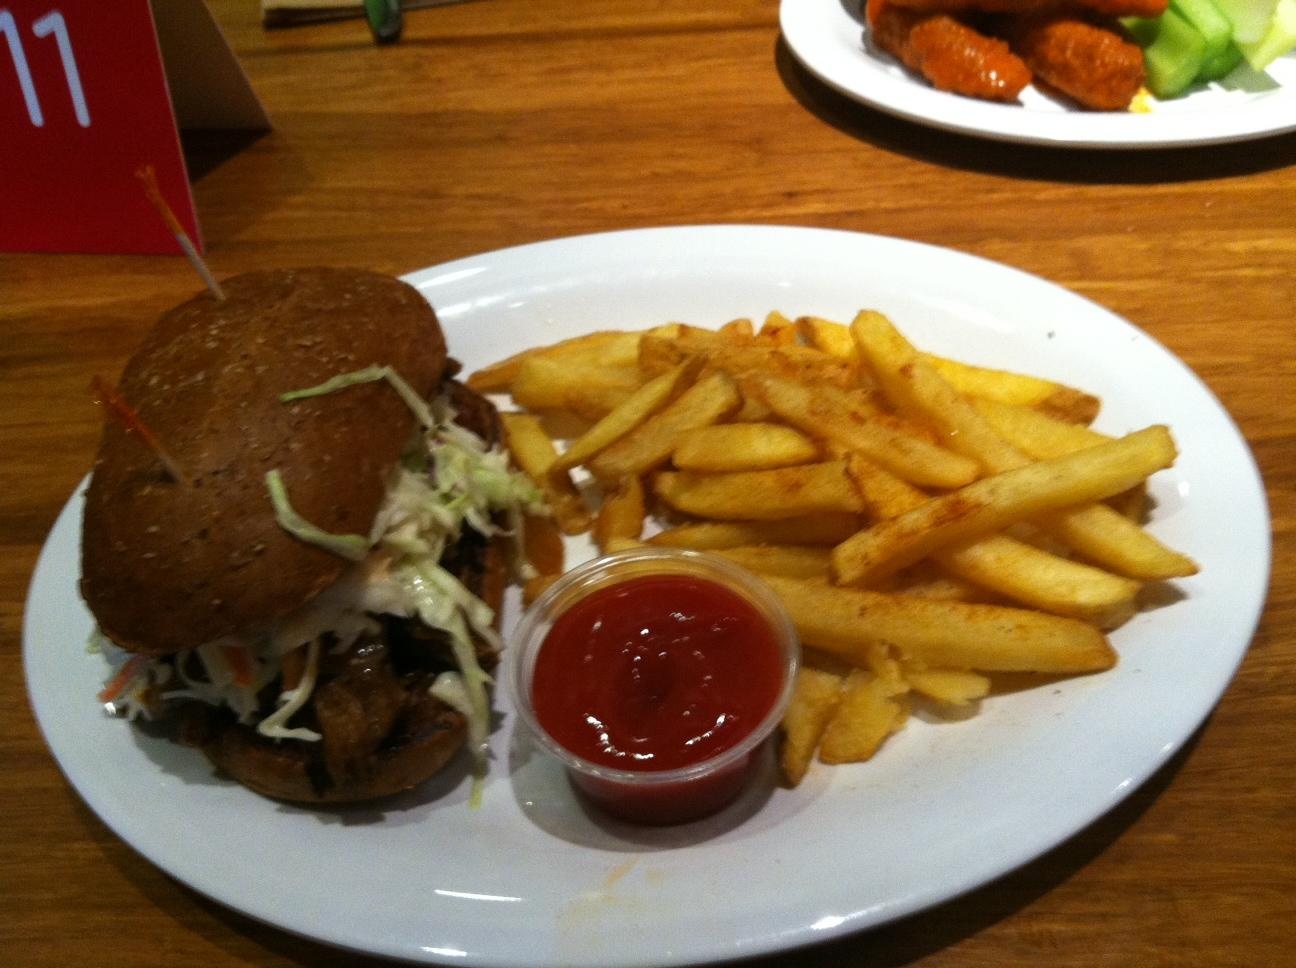 BBQ 'Steak' burger